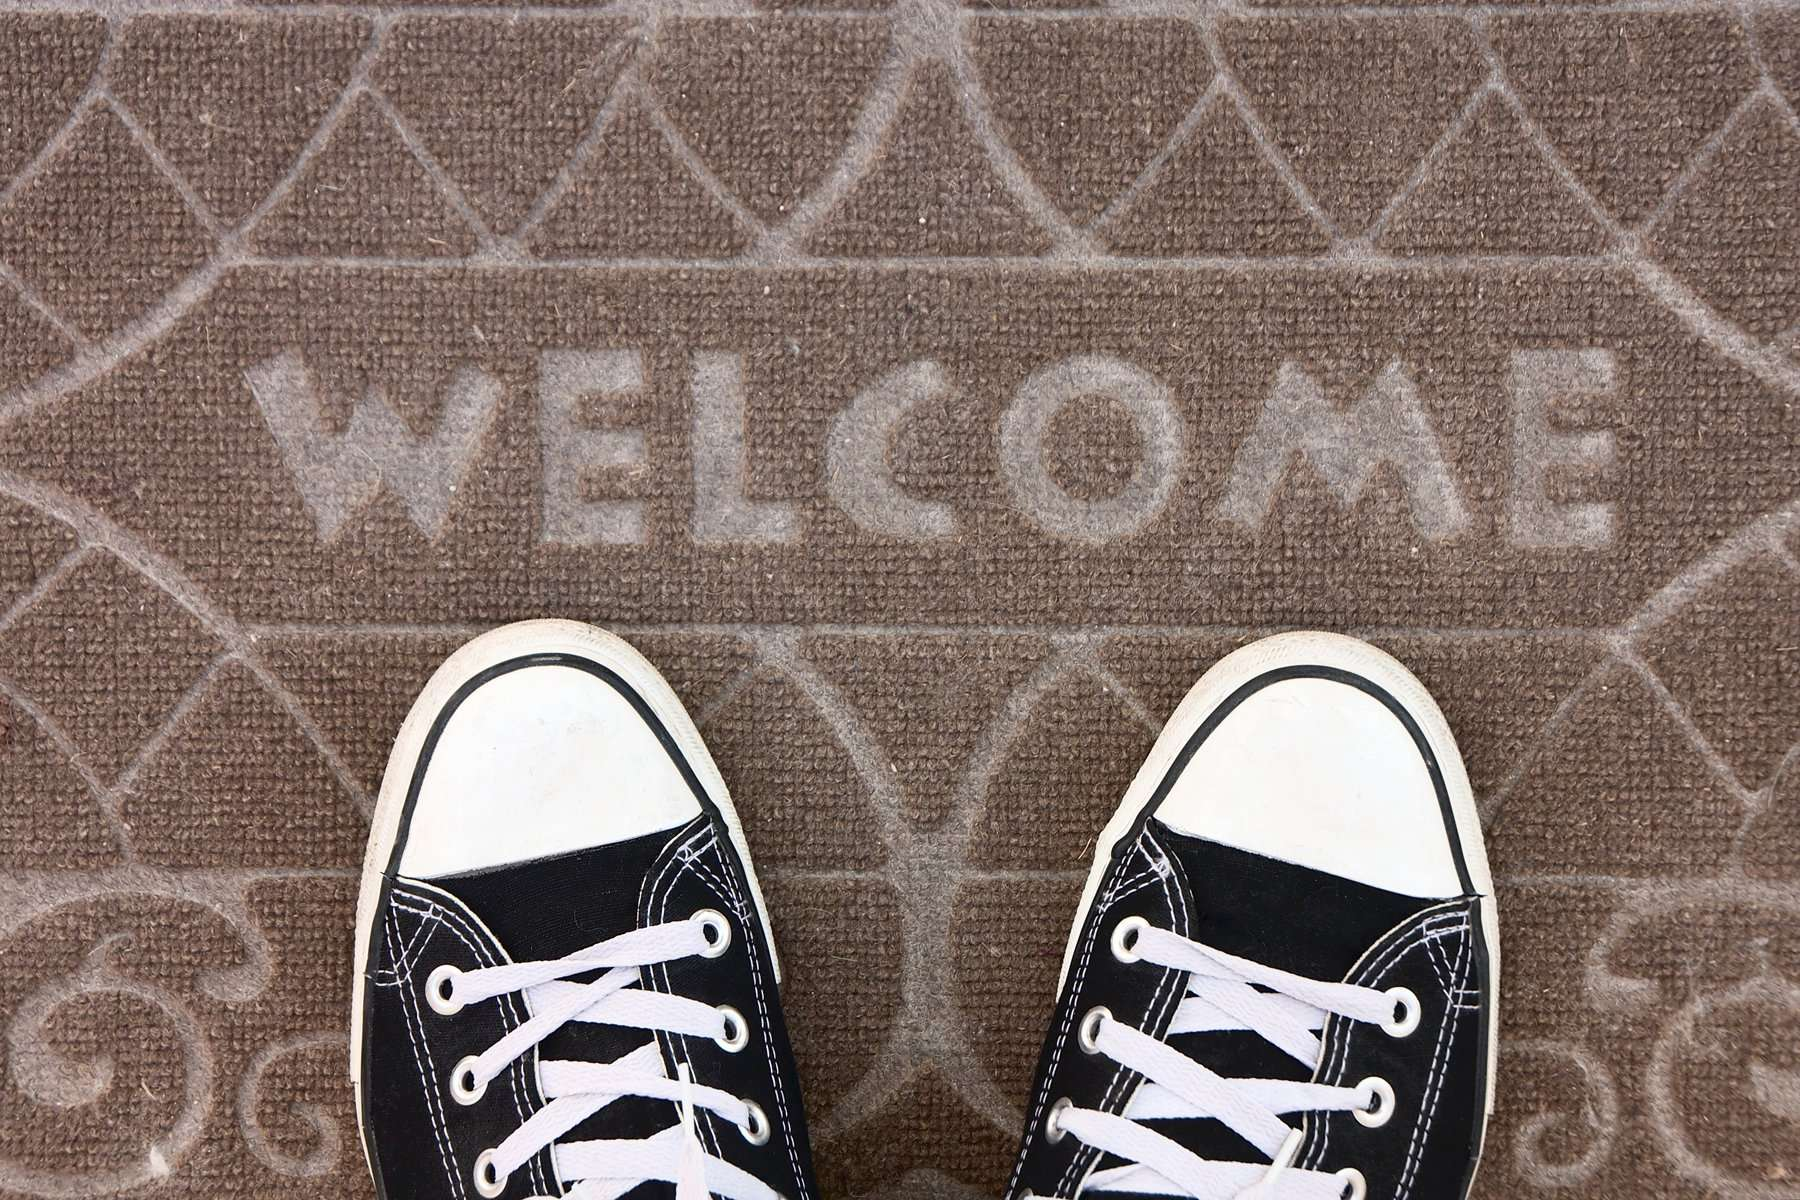 Onboarding | Shoes on Welcome Mat